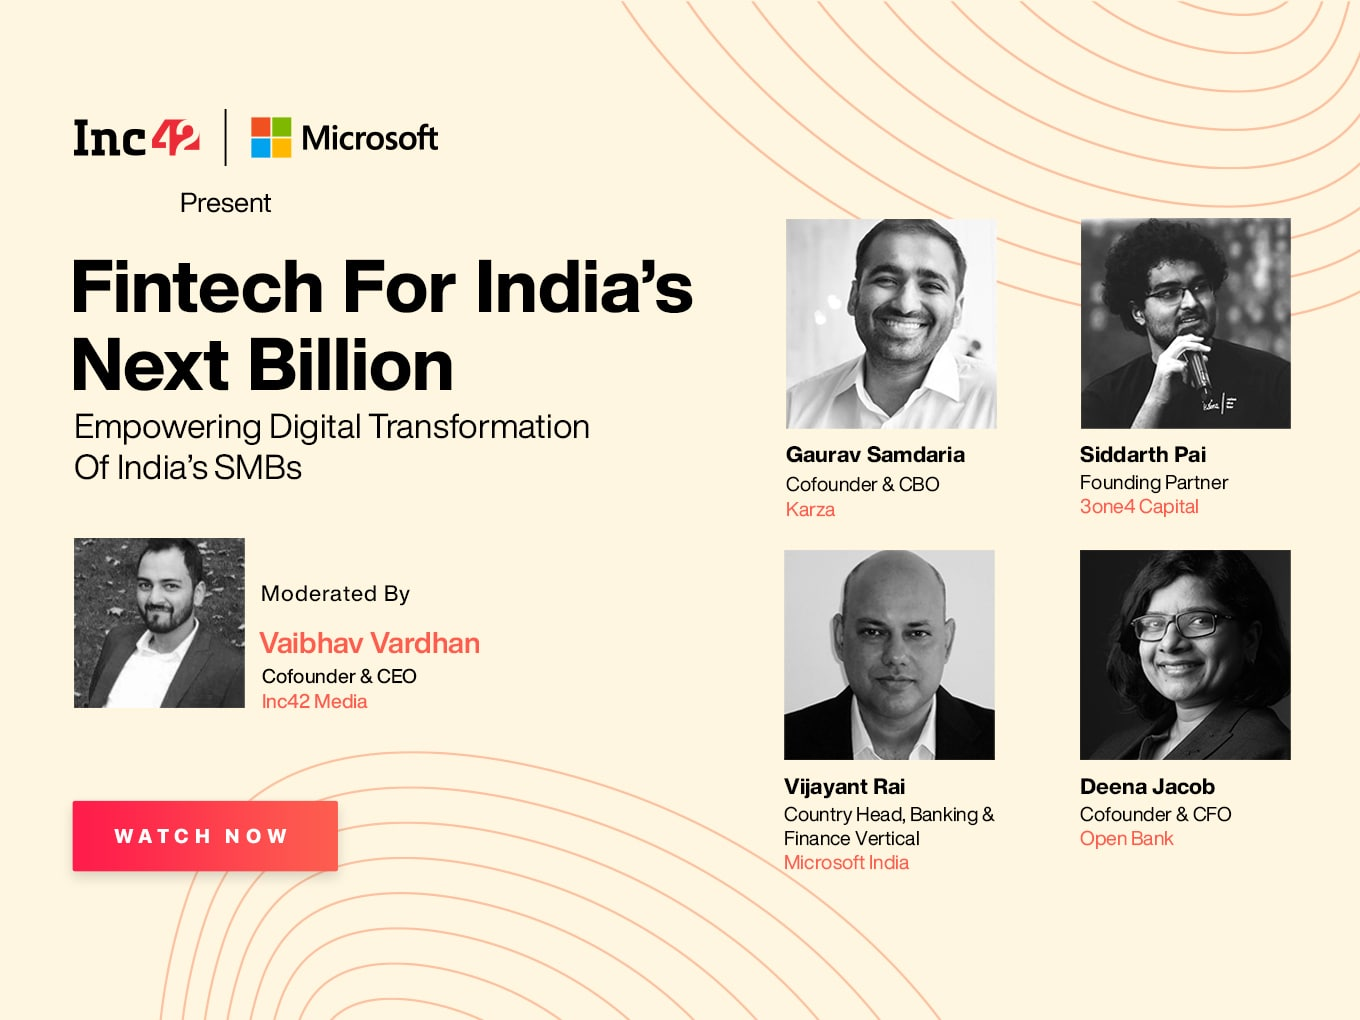 The Dialogue | Fintech Empowering Digital Transformation Of India's SMBs